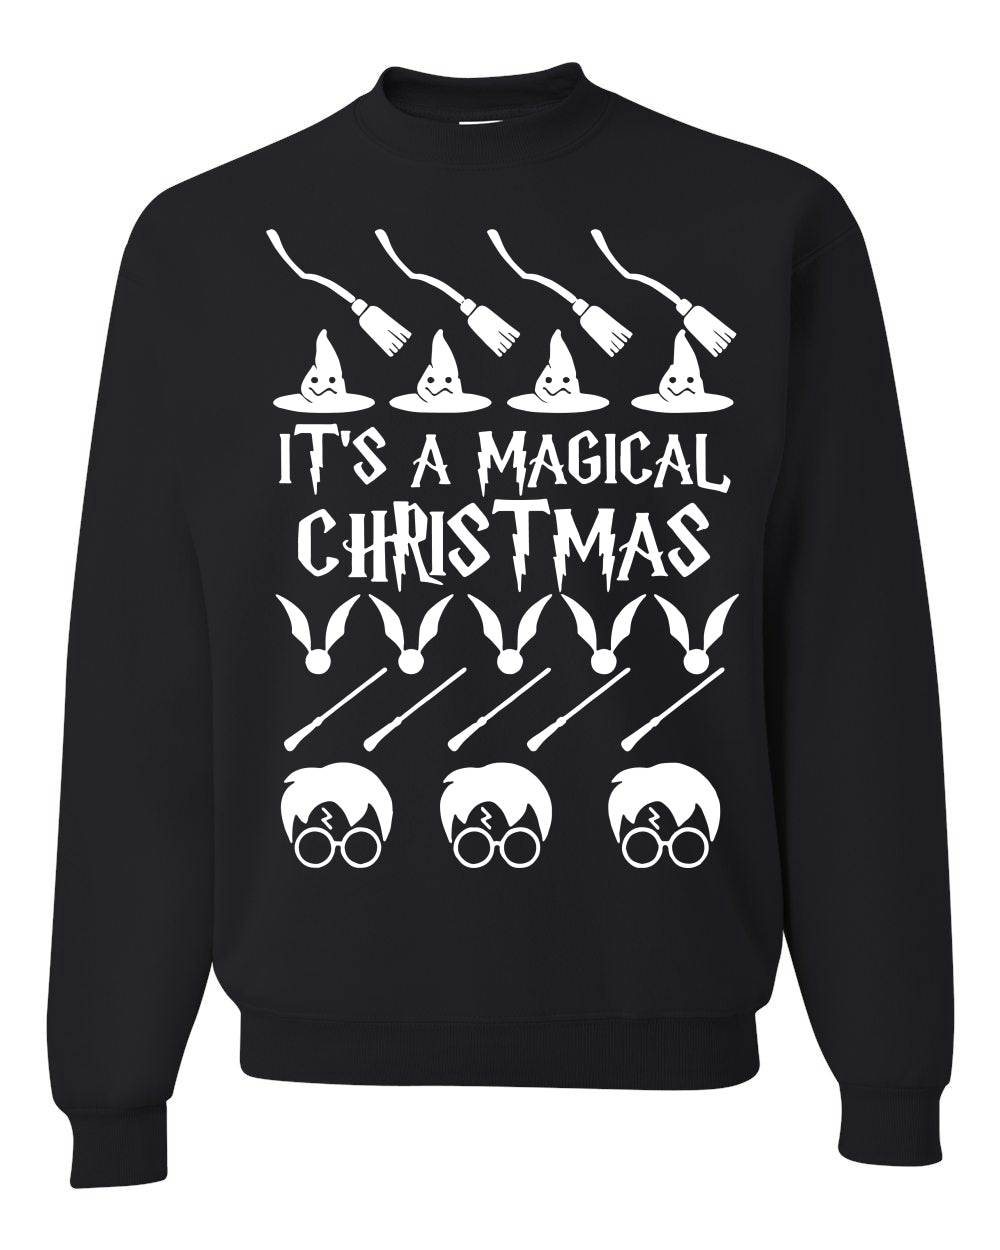 It's A Magical Christmas Wizard Christmas Unisex Crewneck Graphic Sweatshirt